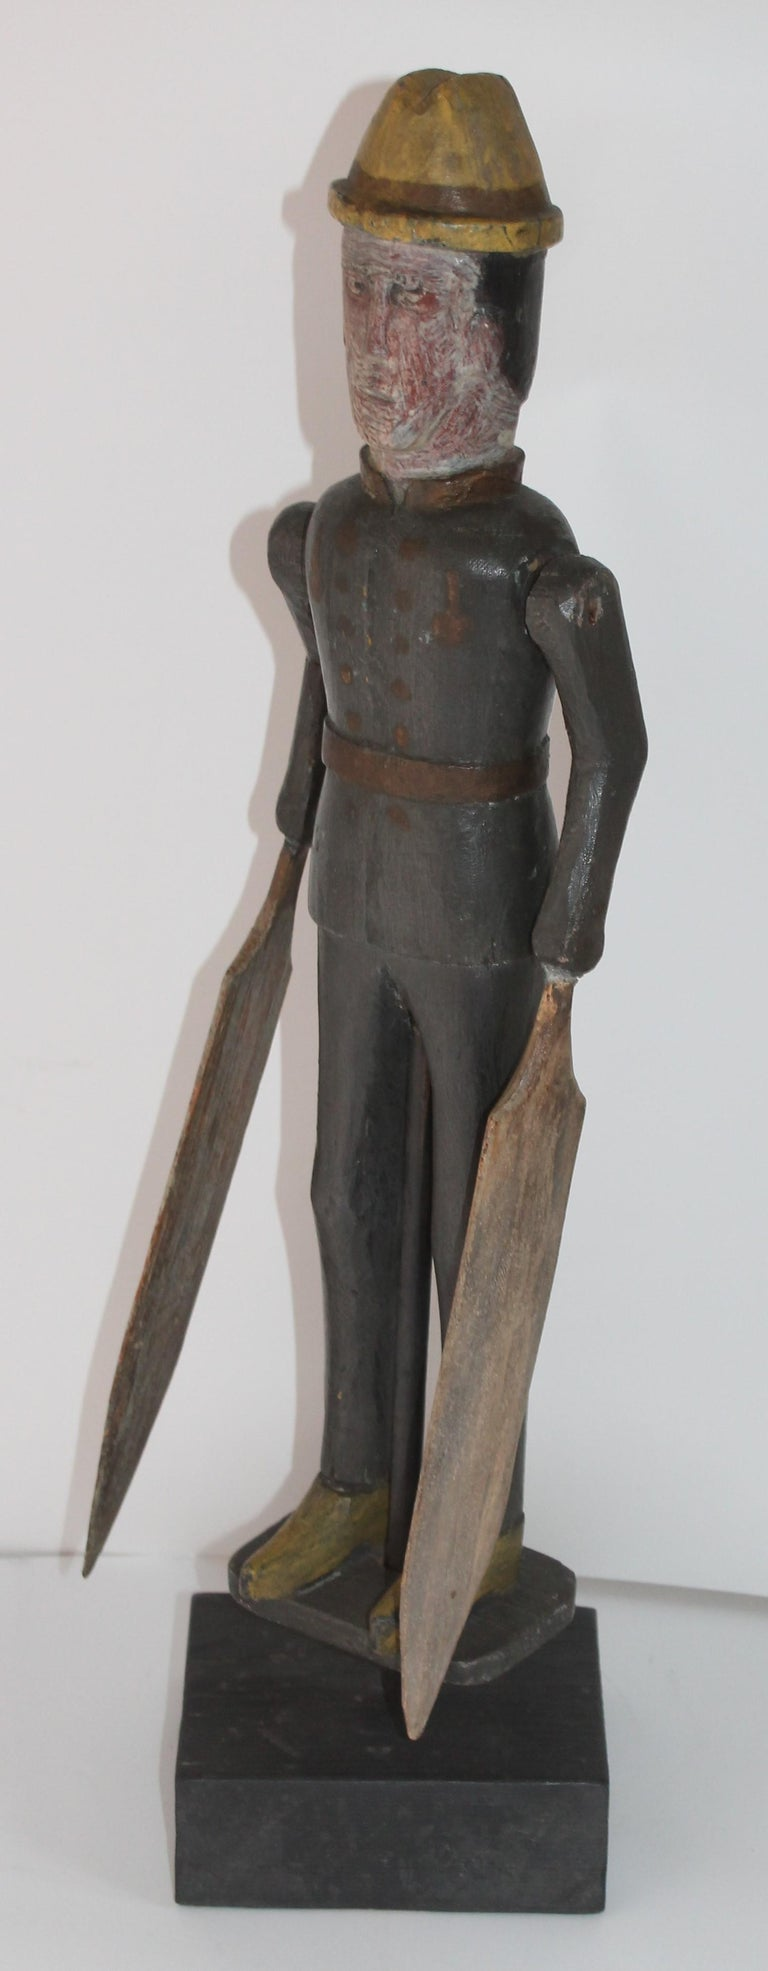 This amazing original painted folky whirlygig of a soldier is in good condition and on a block of wood that is its stand. The original blades have been re-glued at one time, but are also original to the piece. The carving is very crude with a nice